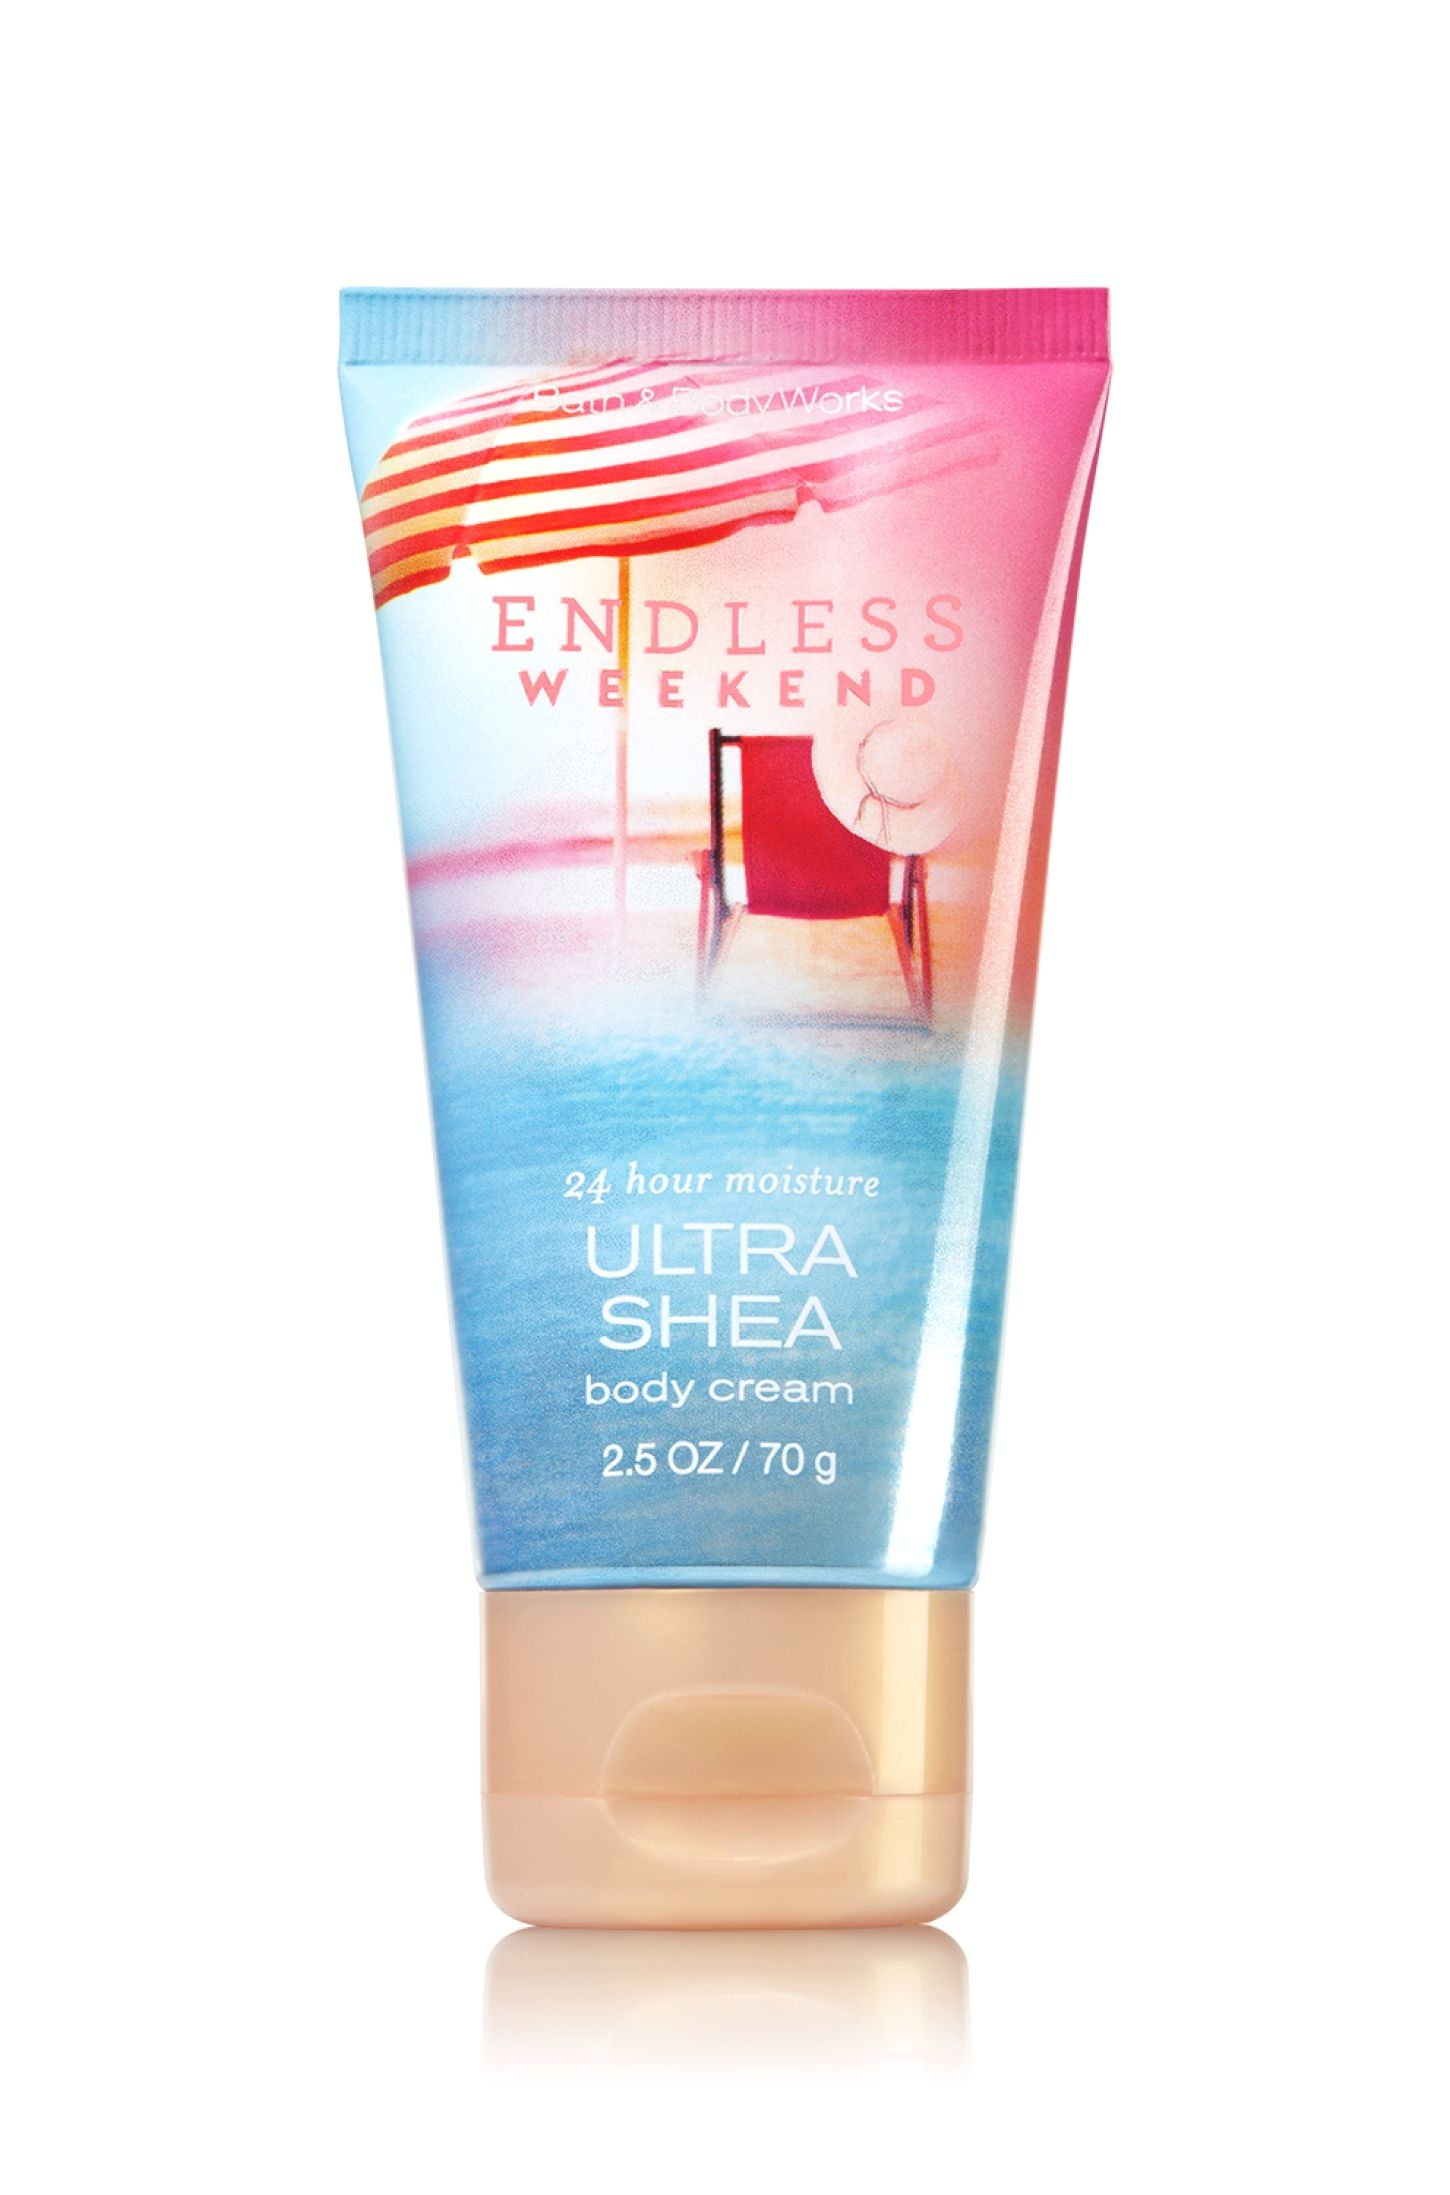 c2475d6600d89 Signature Collection Endless Weekend Travel Size Body Cream ...